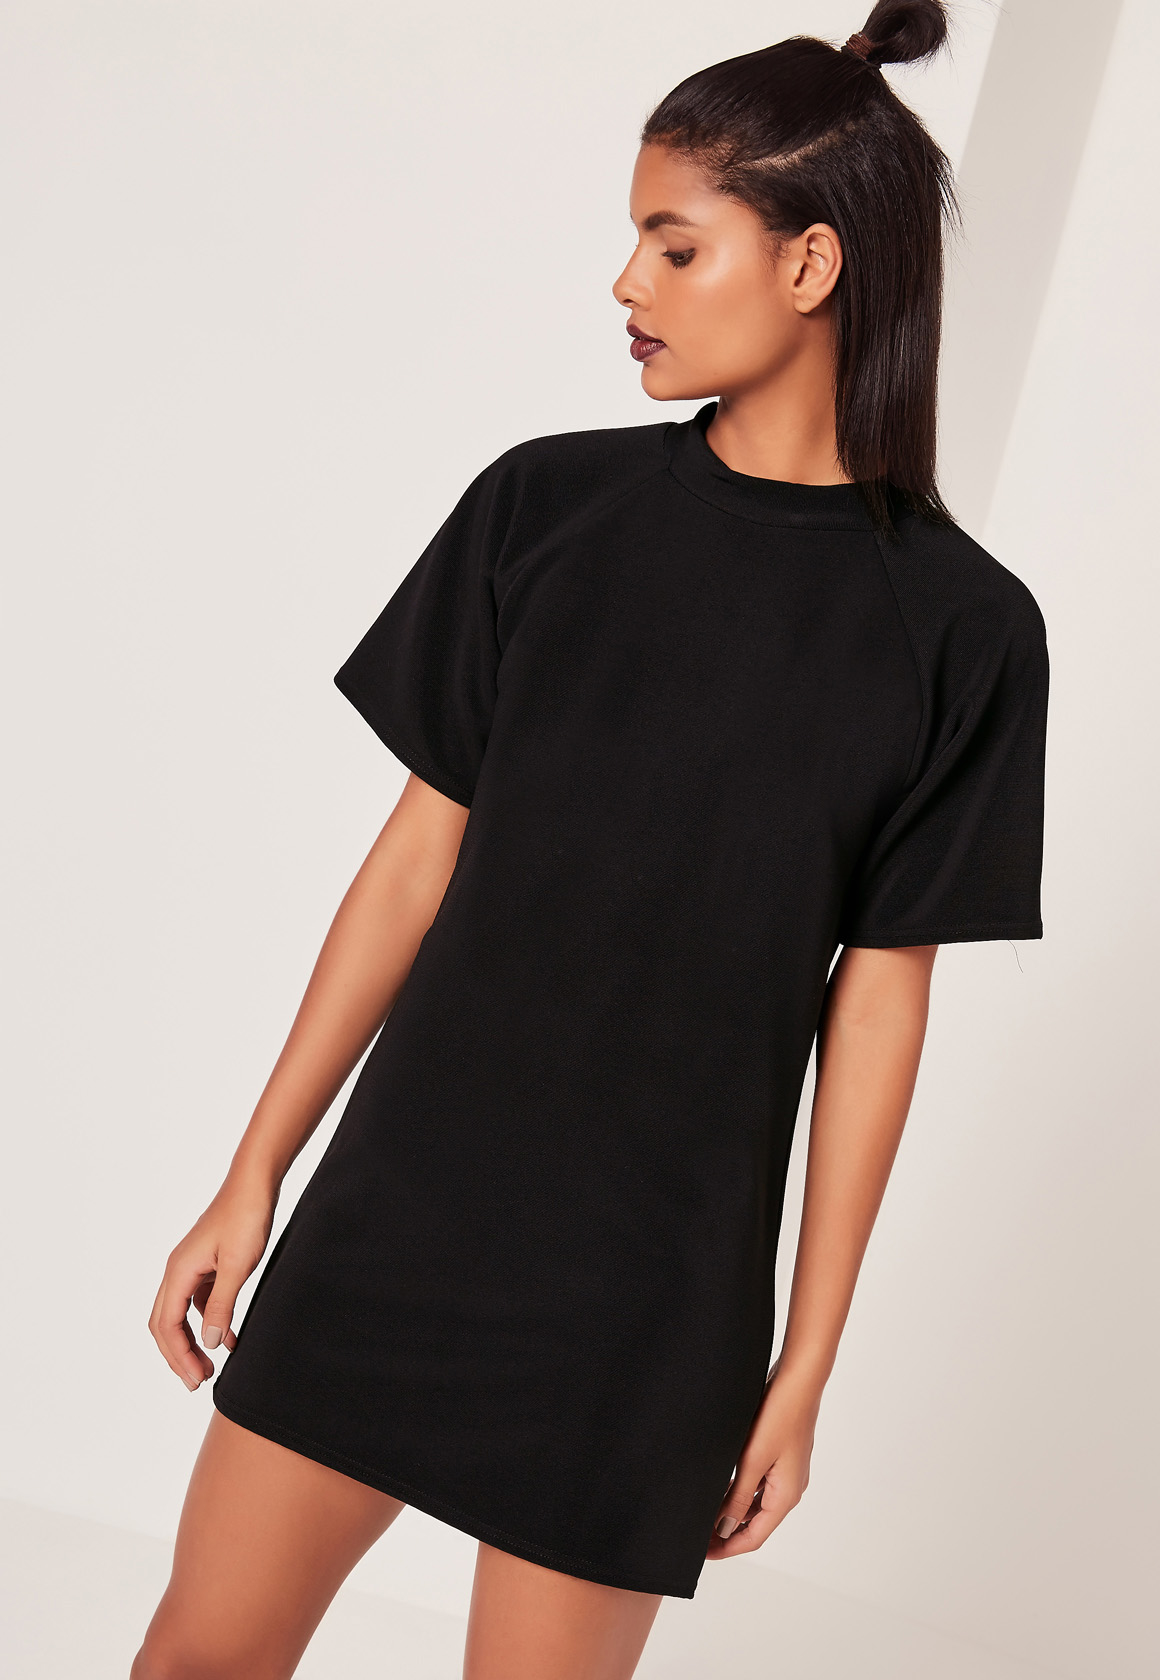 missguided short sleeve oversized t shirt dress black in